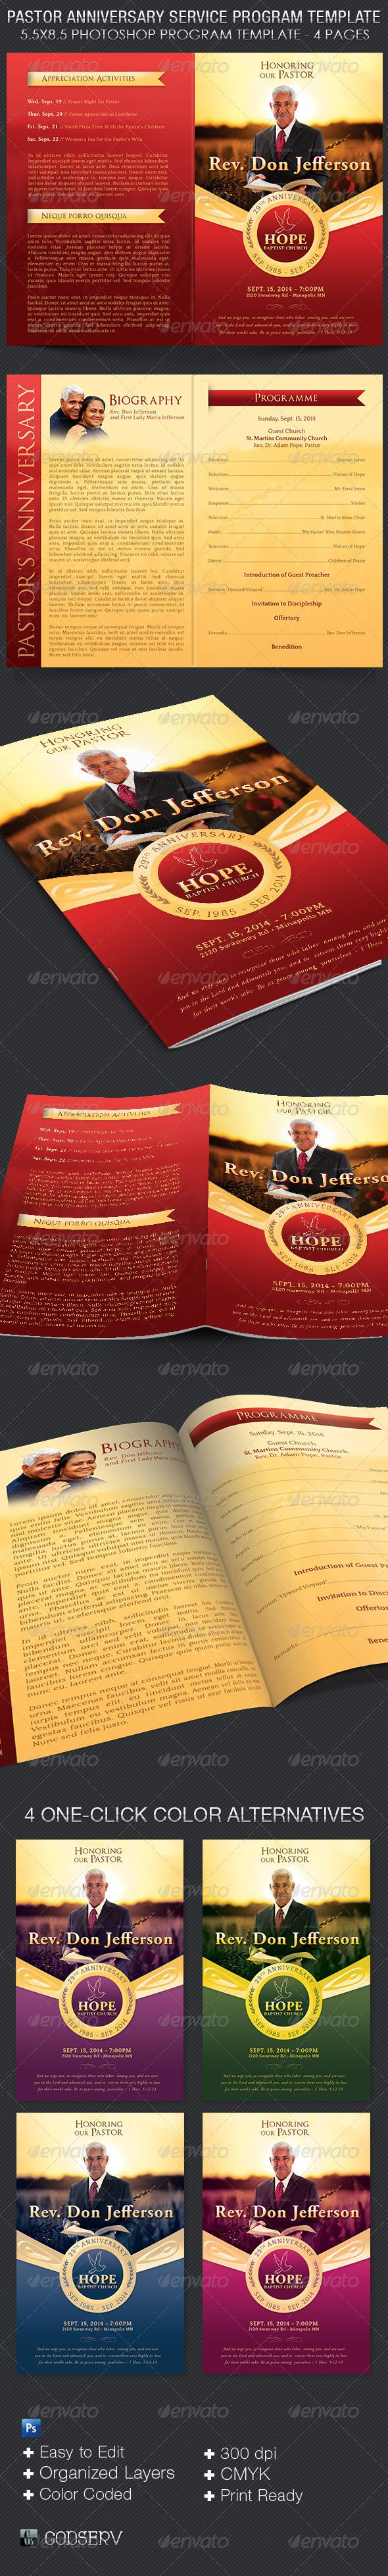 Pastor Anniversary Service Program Template  $7.00 The Pastor Anniversary Service Program Template is for church pastor appreciation or anniversary events. Can also be used for funeral program, sunday morning bulletins and more.